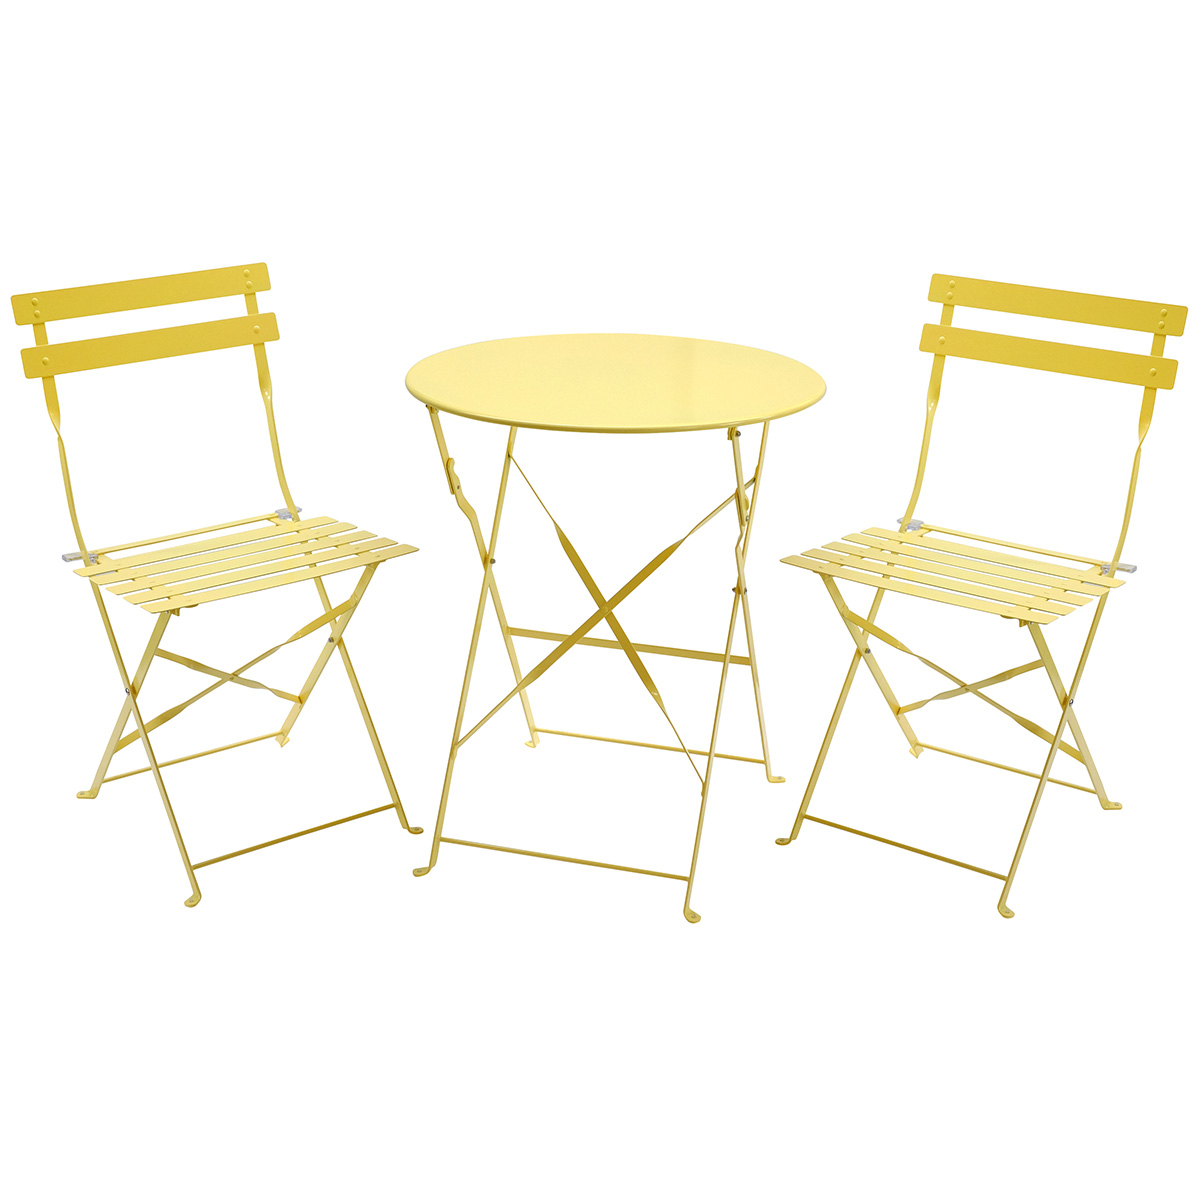 2 chairs and table patio set ergonomic chair for home office charles bentley 3 piece metal bistro garden